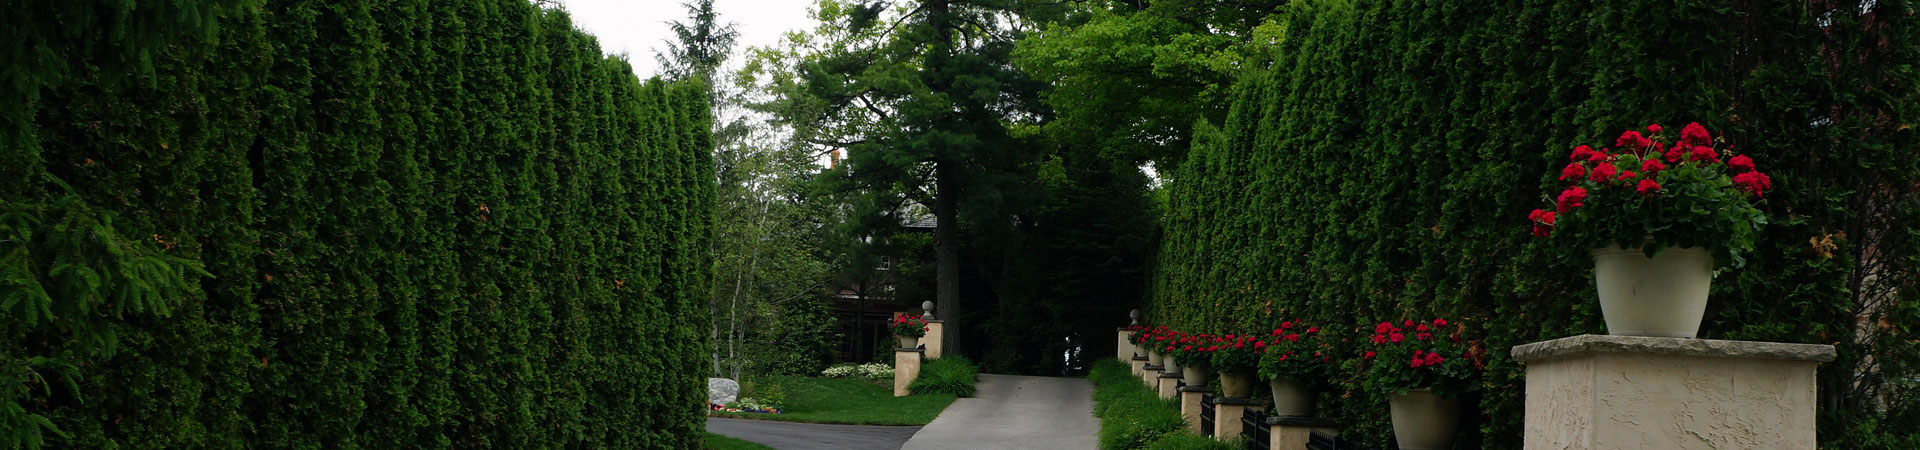 garden with privacy trees